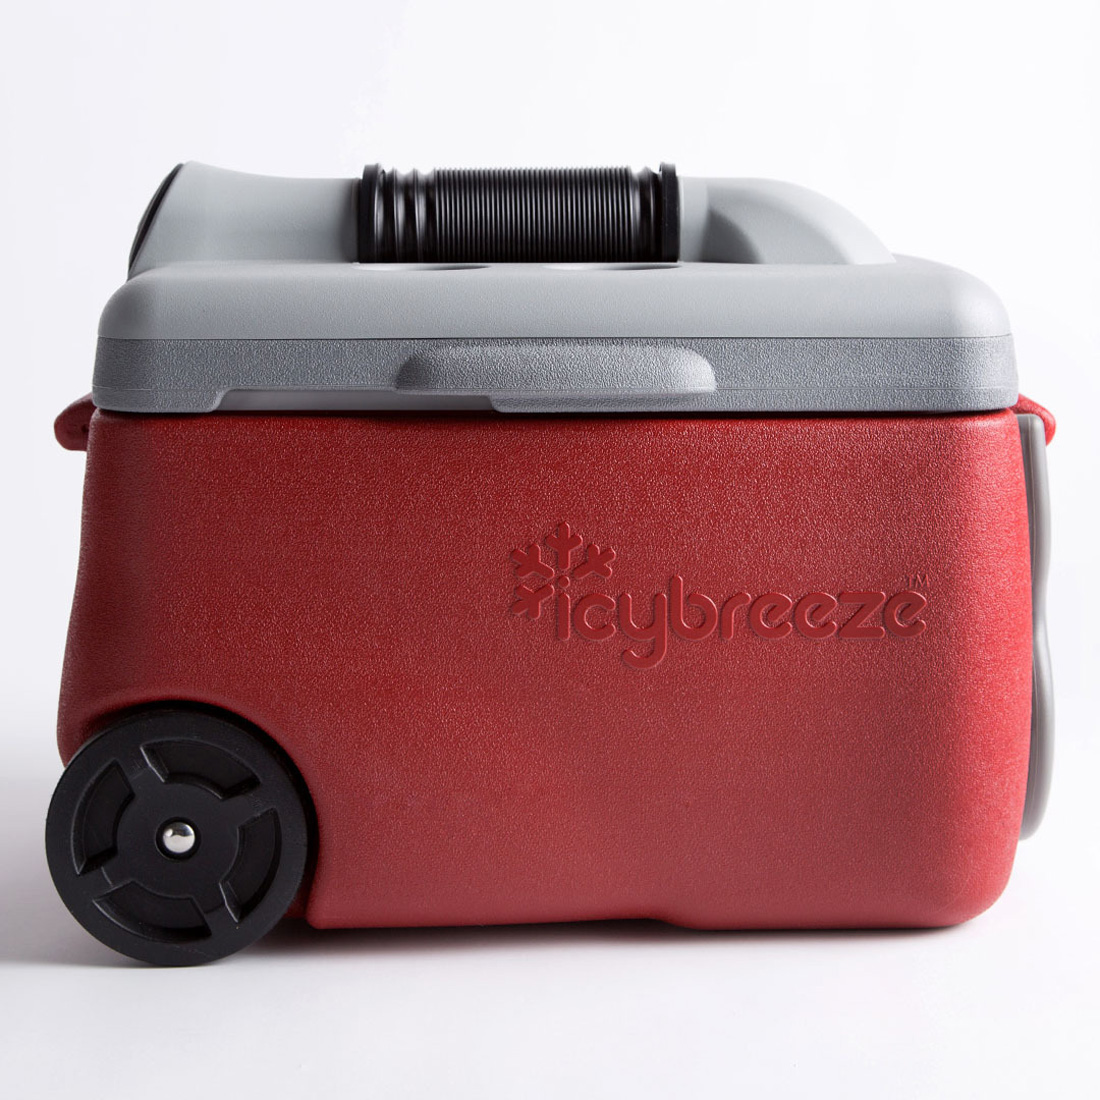 IcyBreeze Portable Air Conditioner / Ice Cooler The Green Head #AB2027